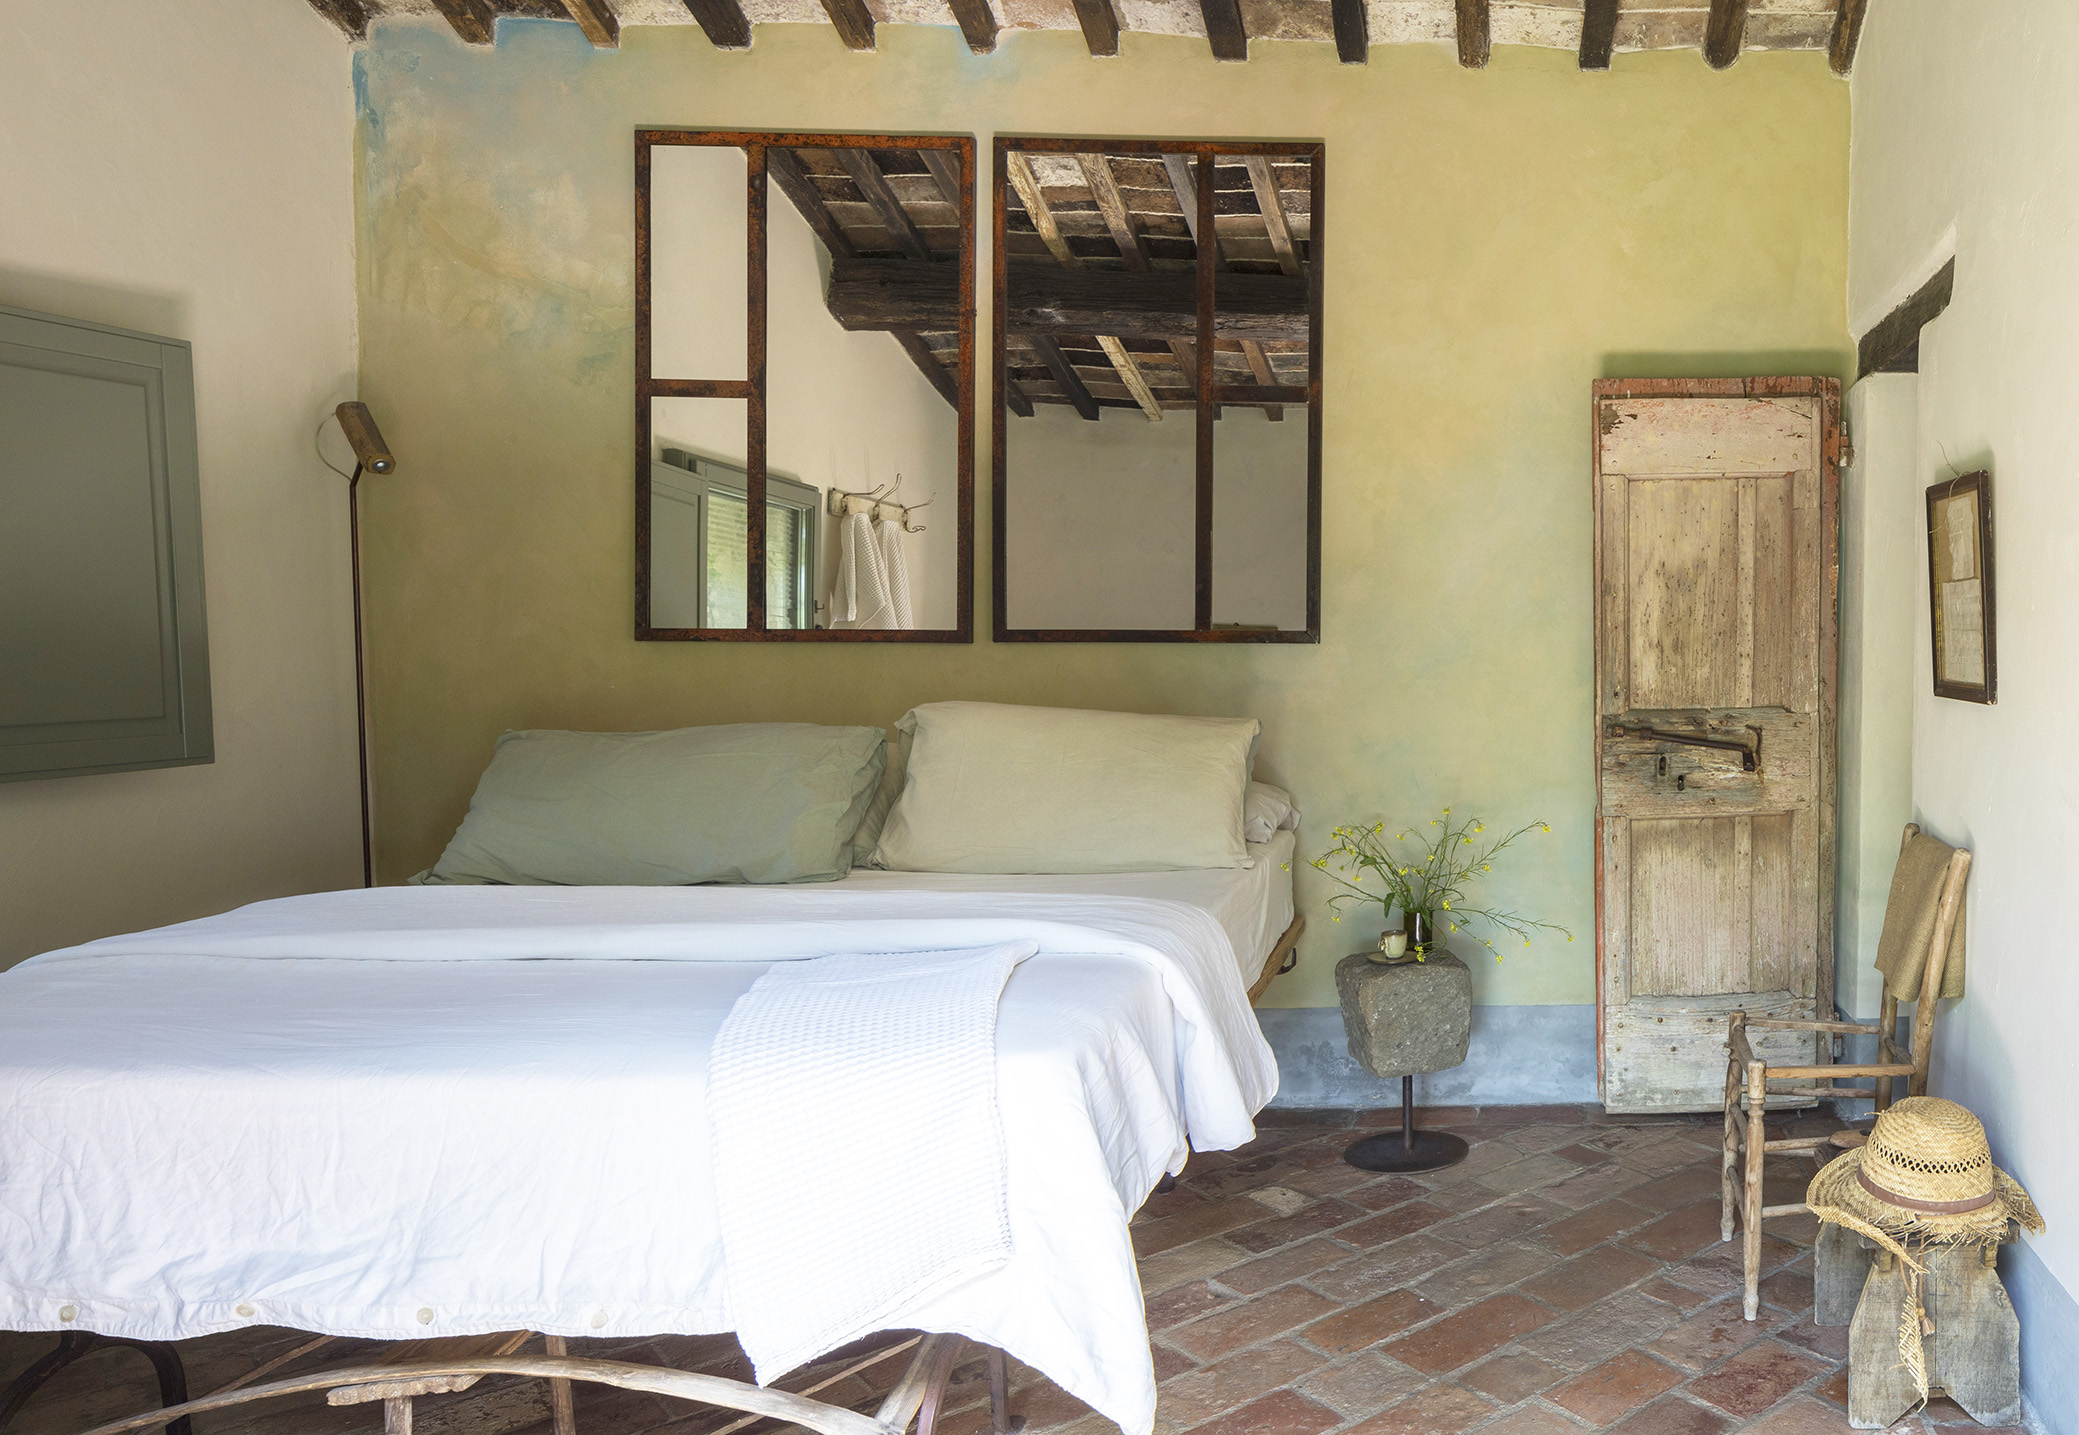 A Follonico bedroom suite with antiques, a stone floor and lots of natural light